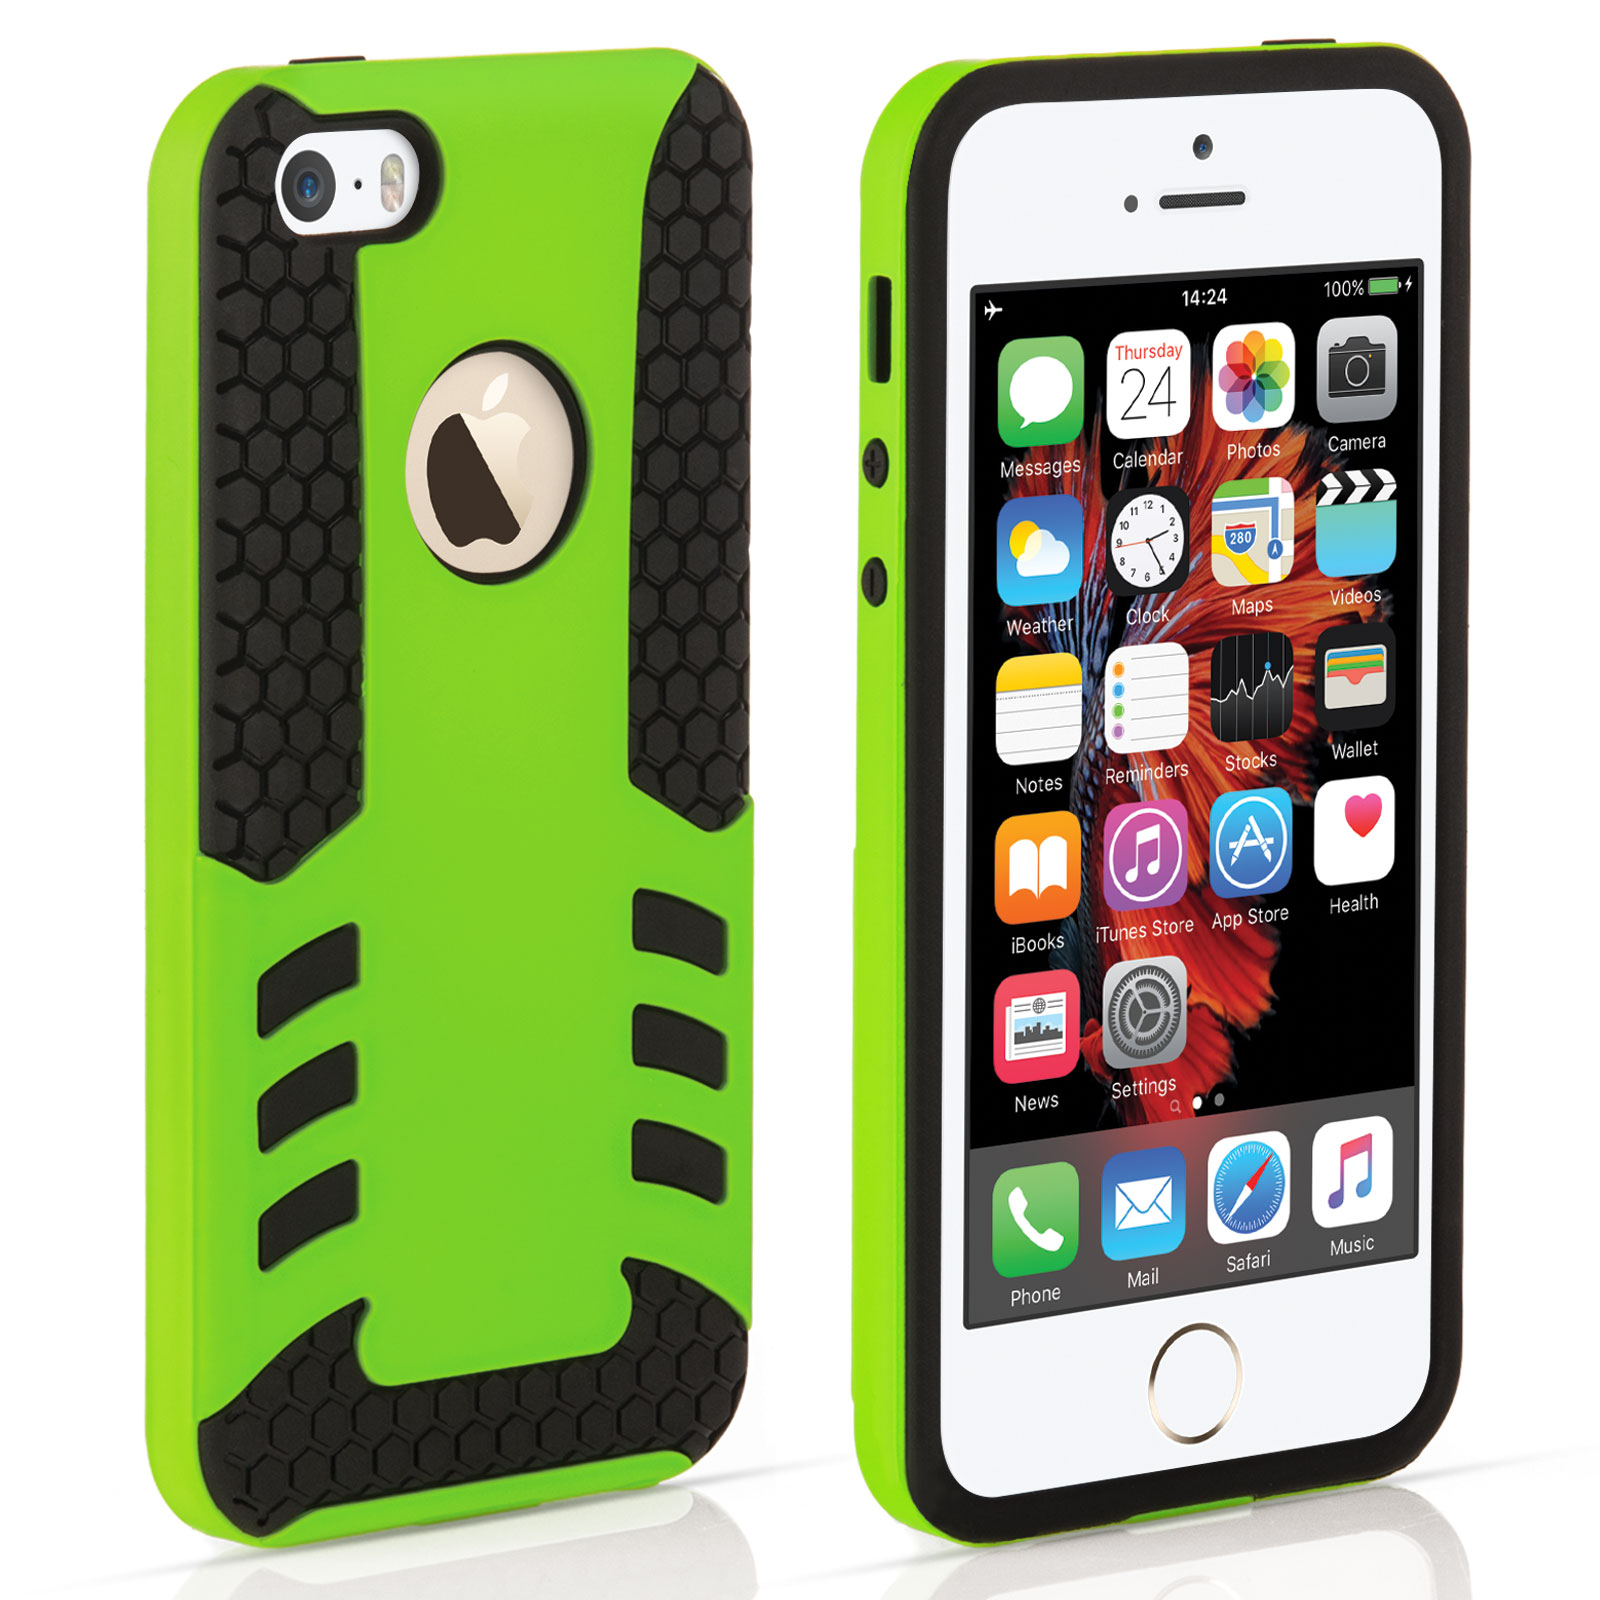 YouSave iPhone 5 / 5S / SE Border Combo Case - Green